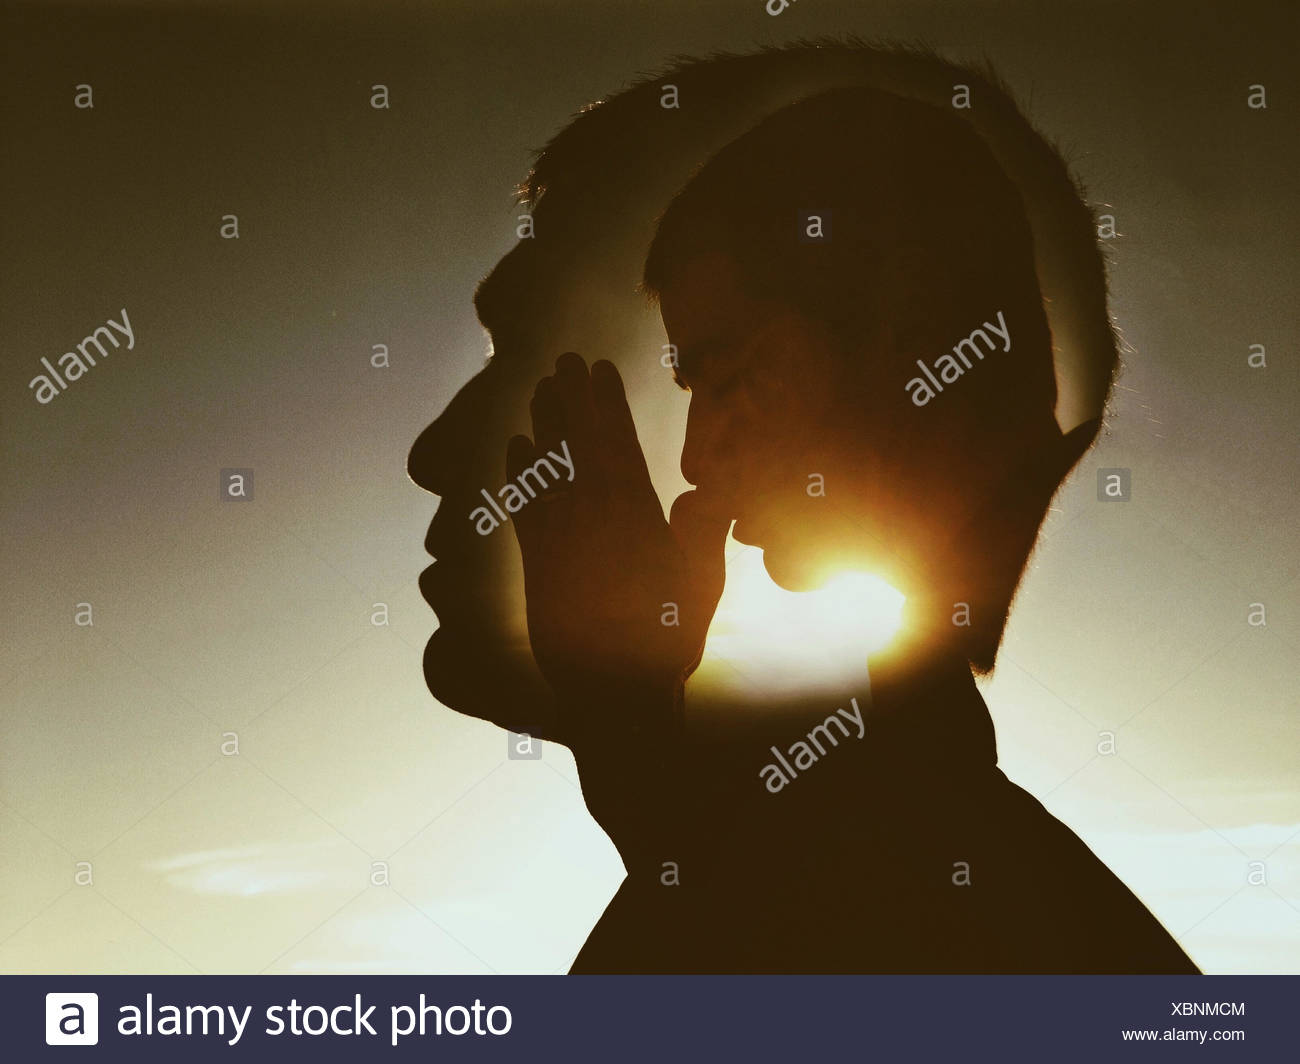 Digital composite of man praying - Stock Image